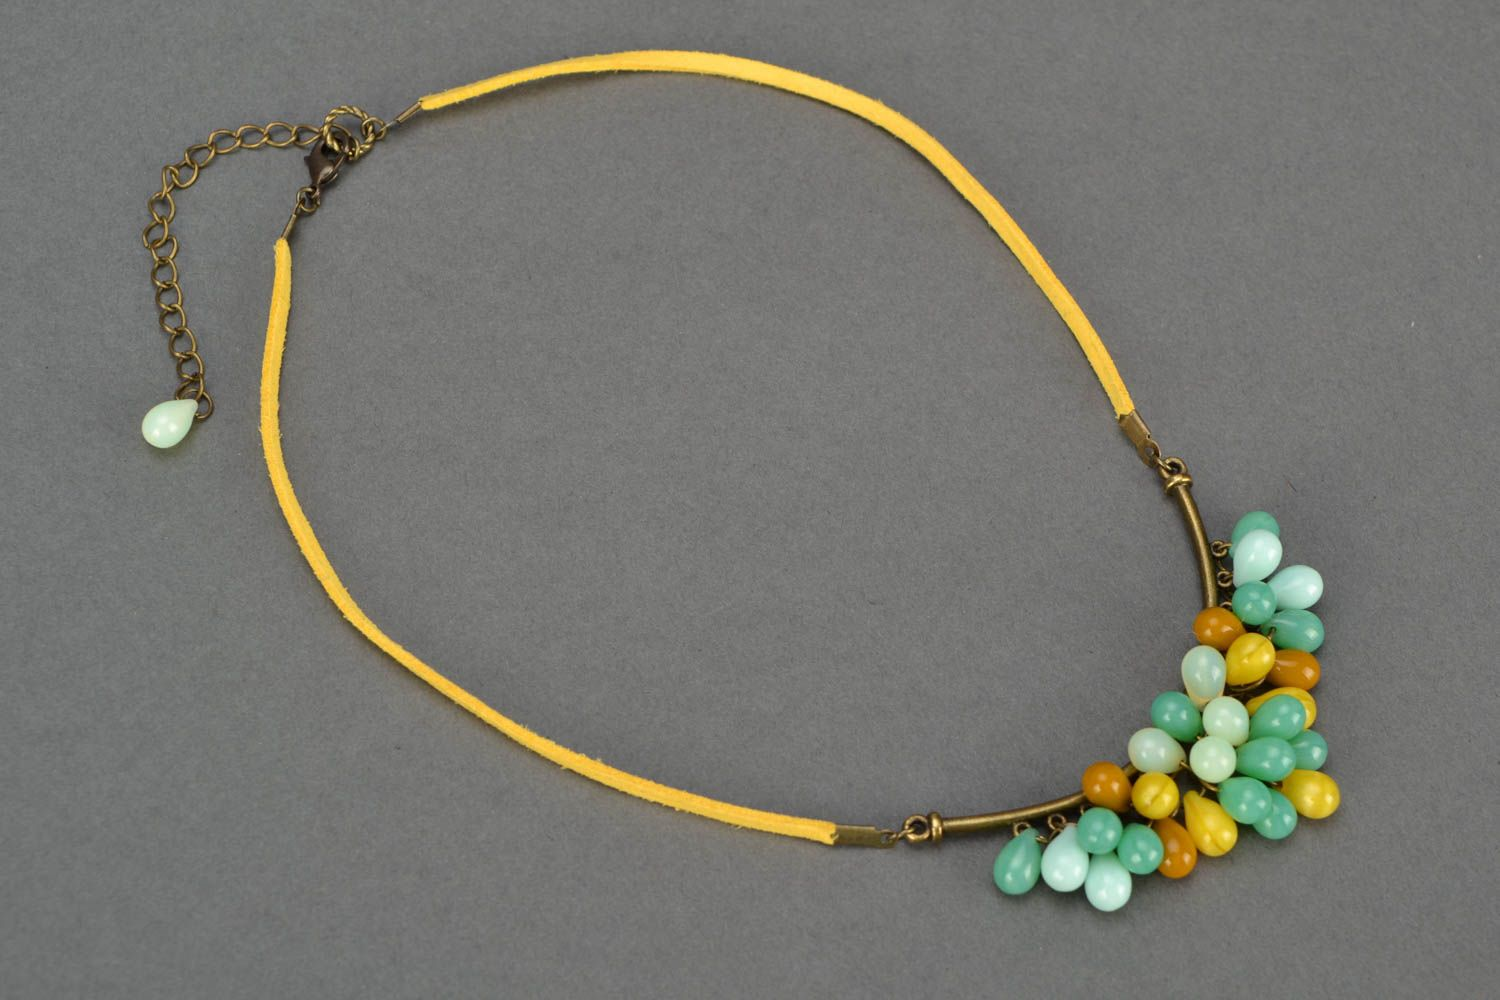 Beautiful women's handmade designer suede cord necklace with Czech glass beads photo 5